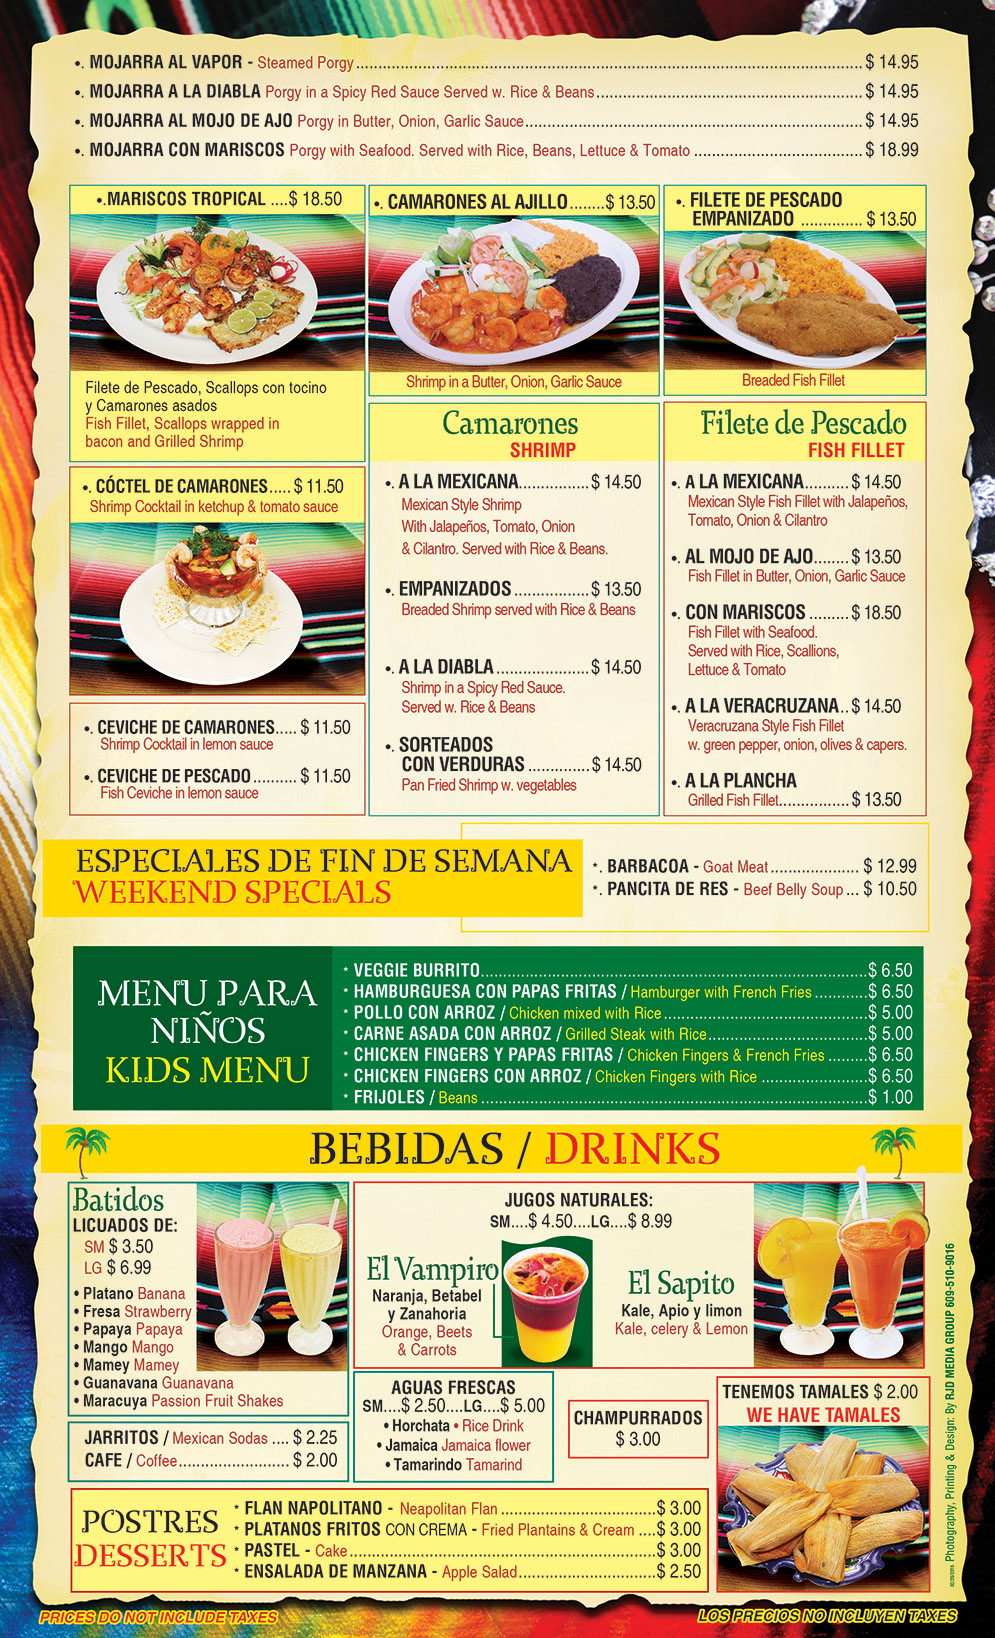 El Gallo Tropical Menu Page 5